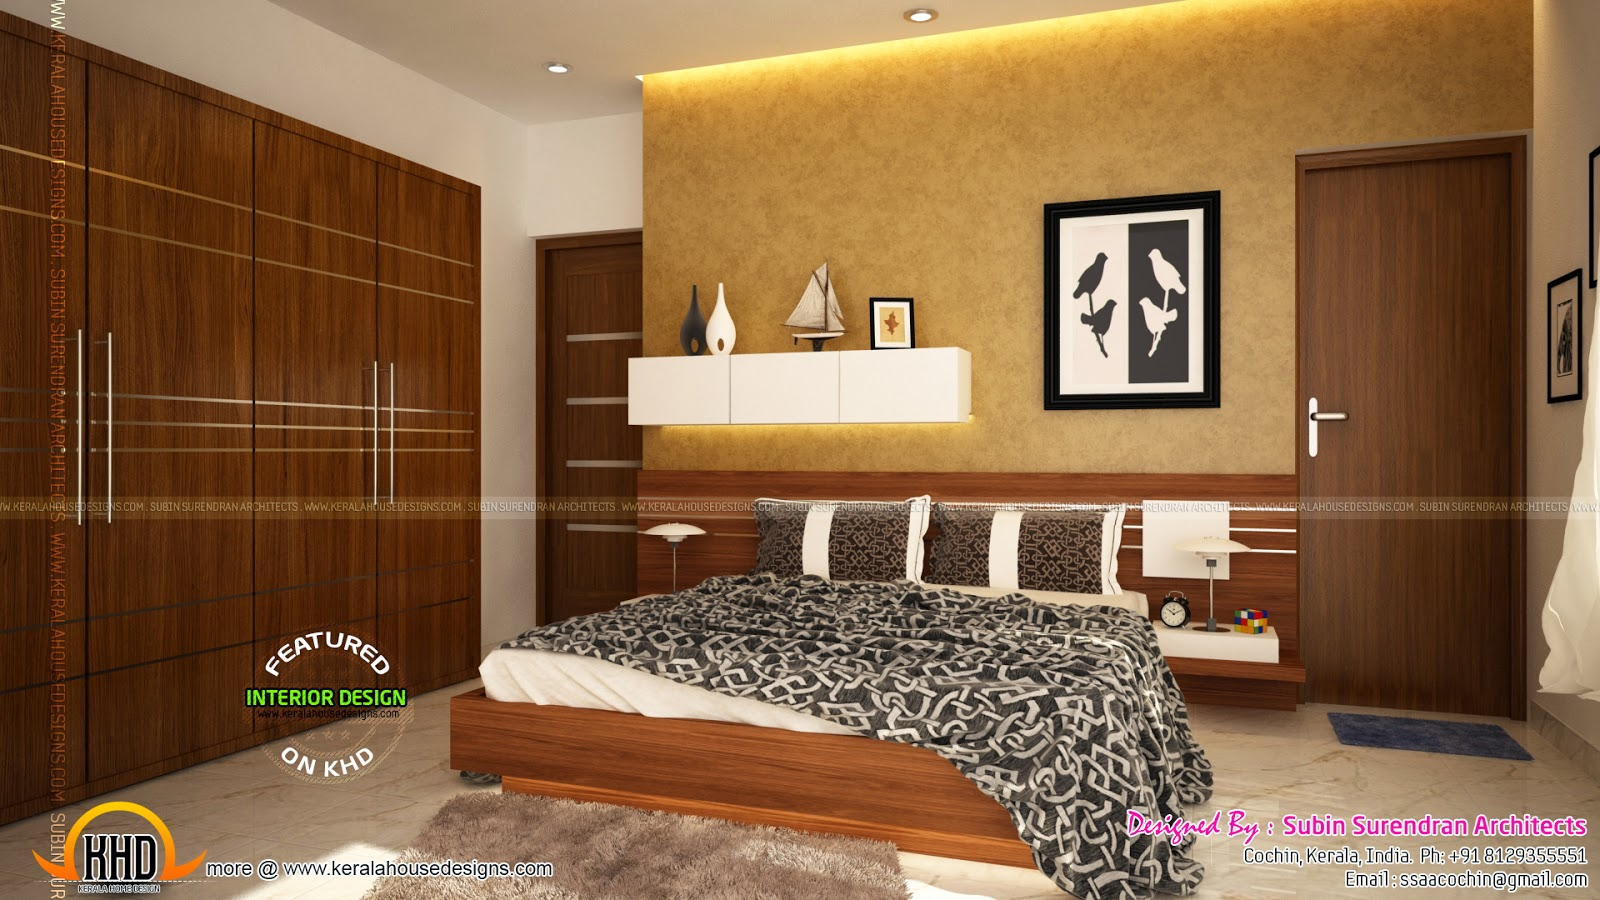 Kerala style low cost double storied home keralahousedesigns for One bedroom house interior design